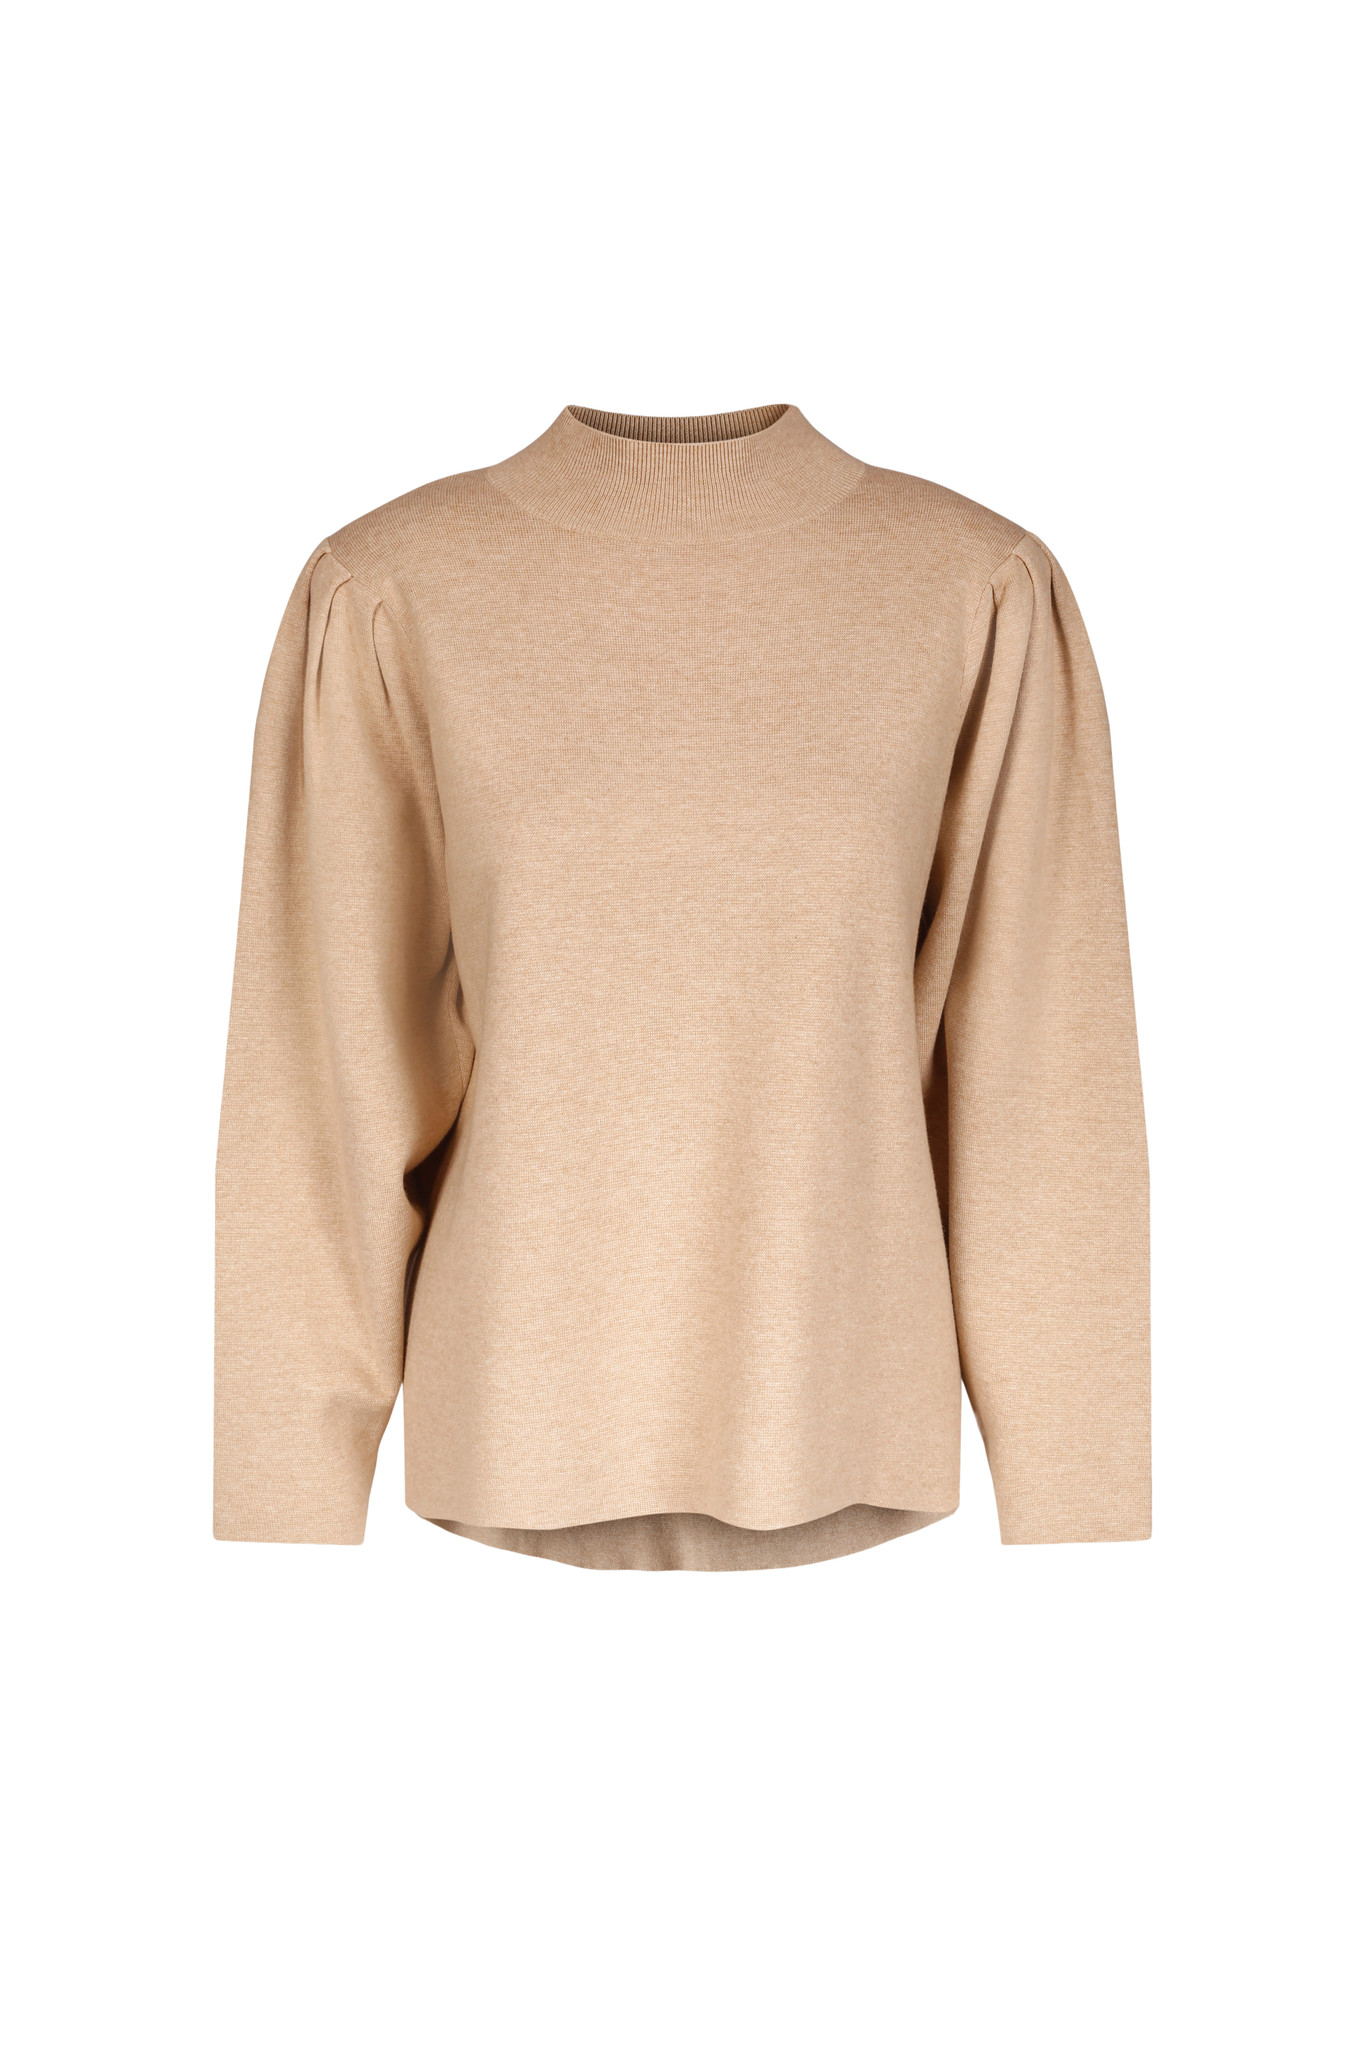 Claire Sweater - Camel Melange-1